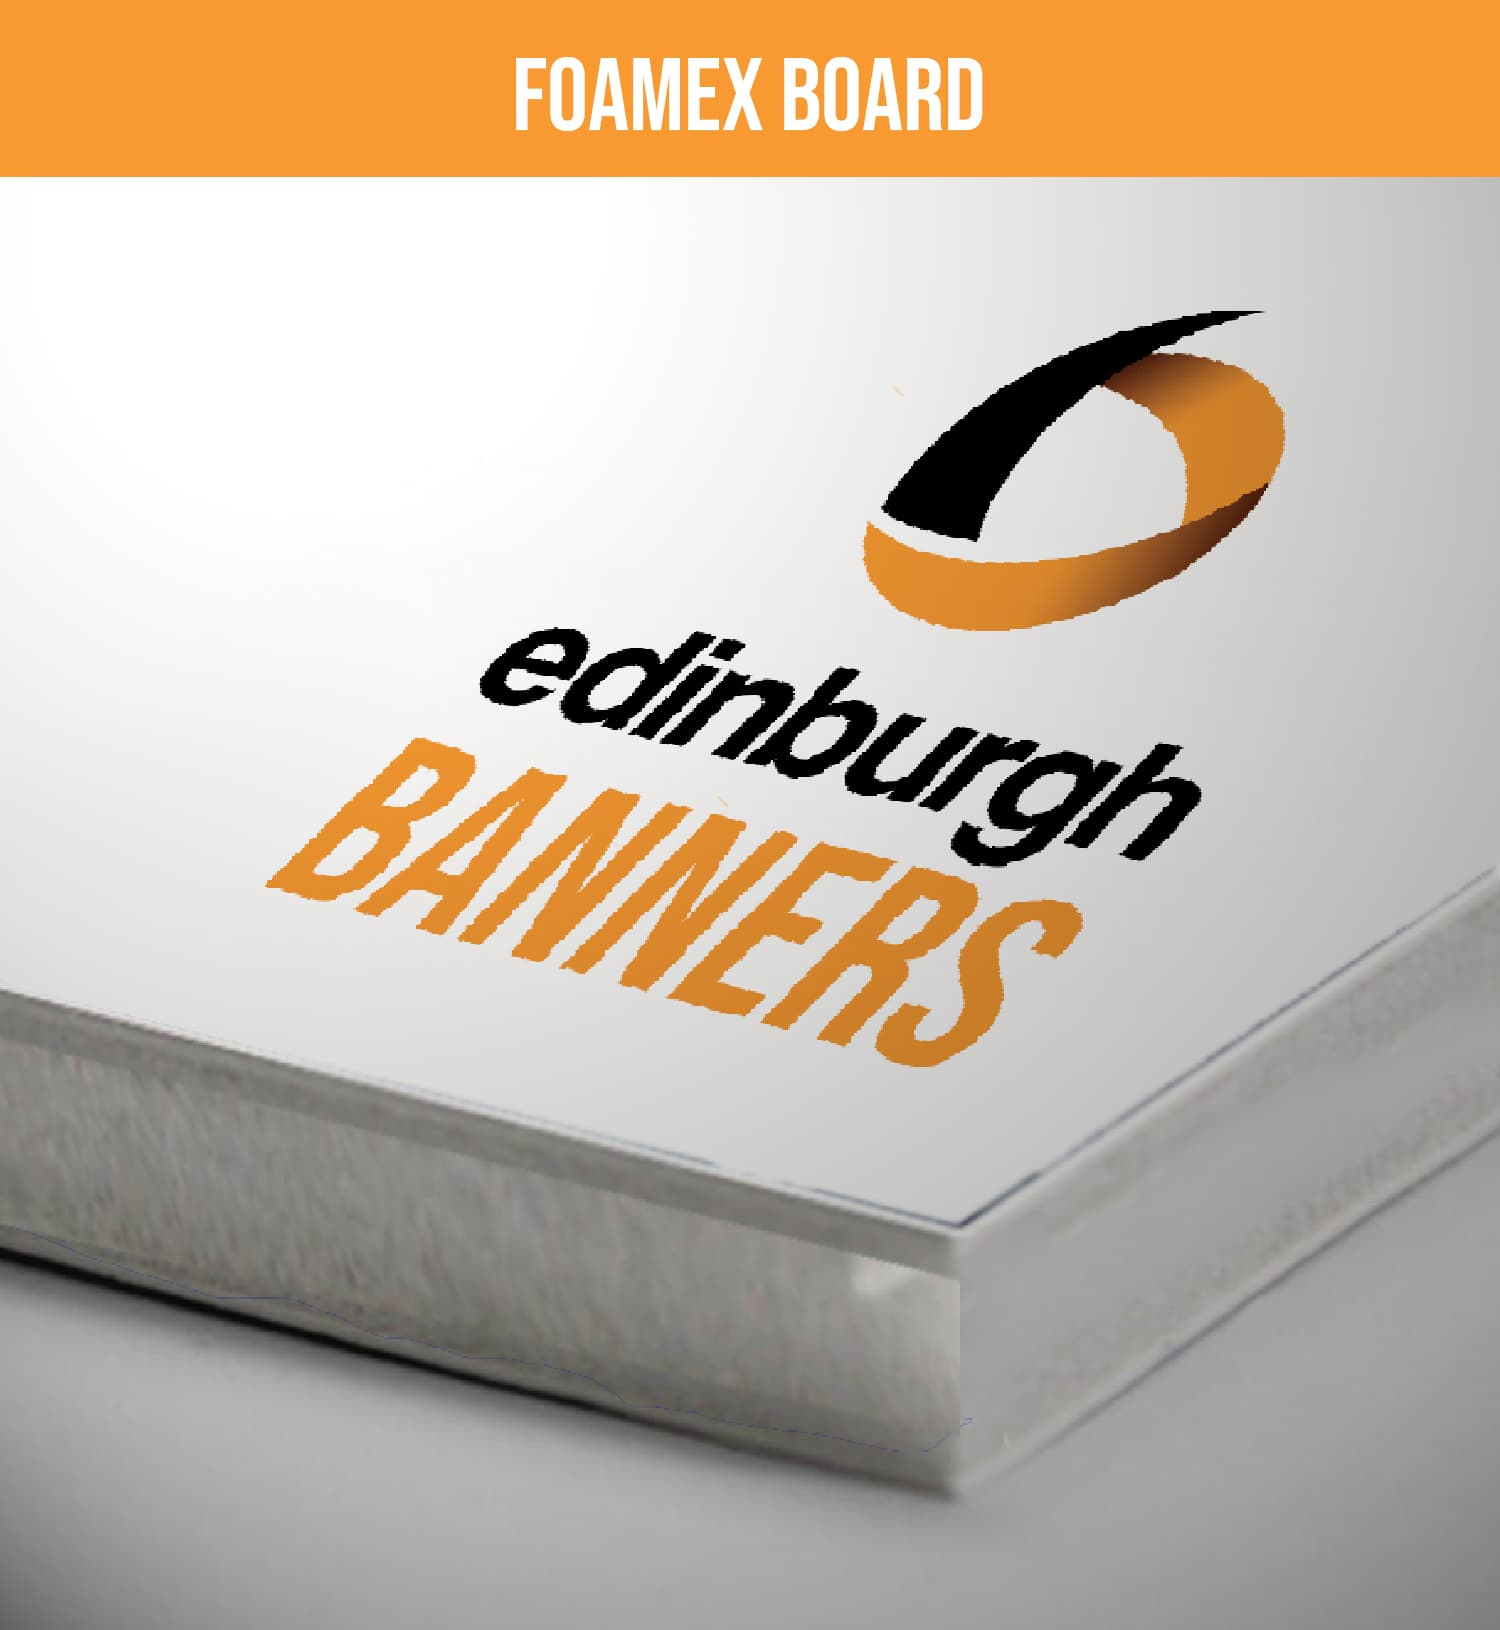 Edinburgh Banners Foamex Boards